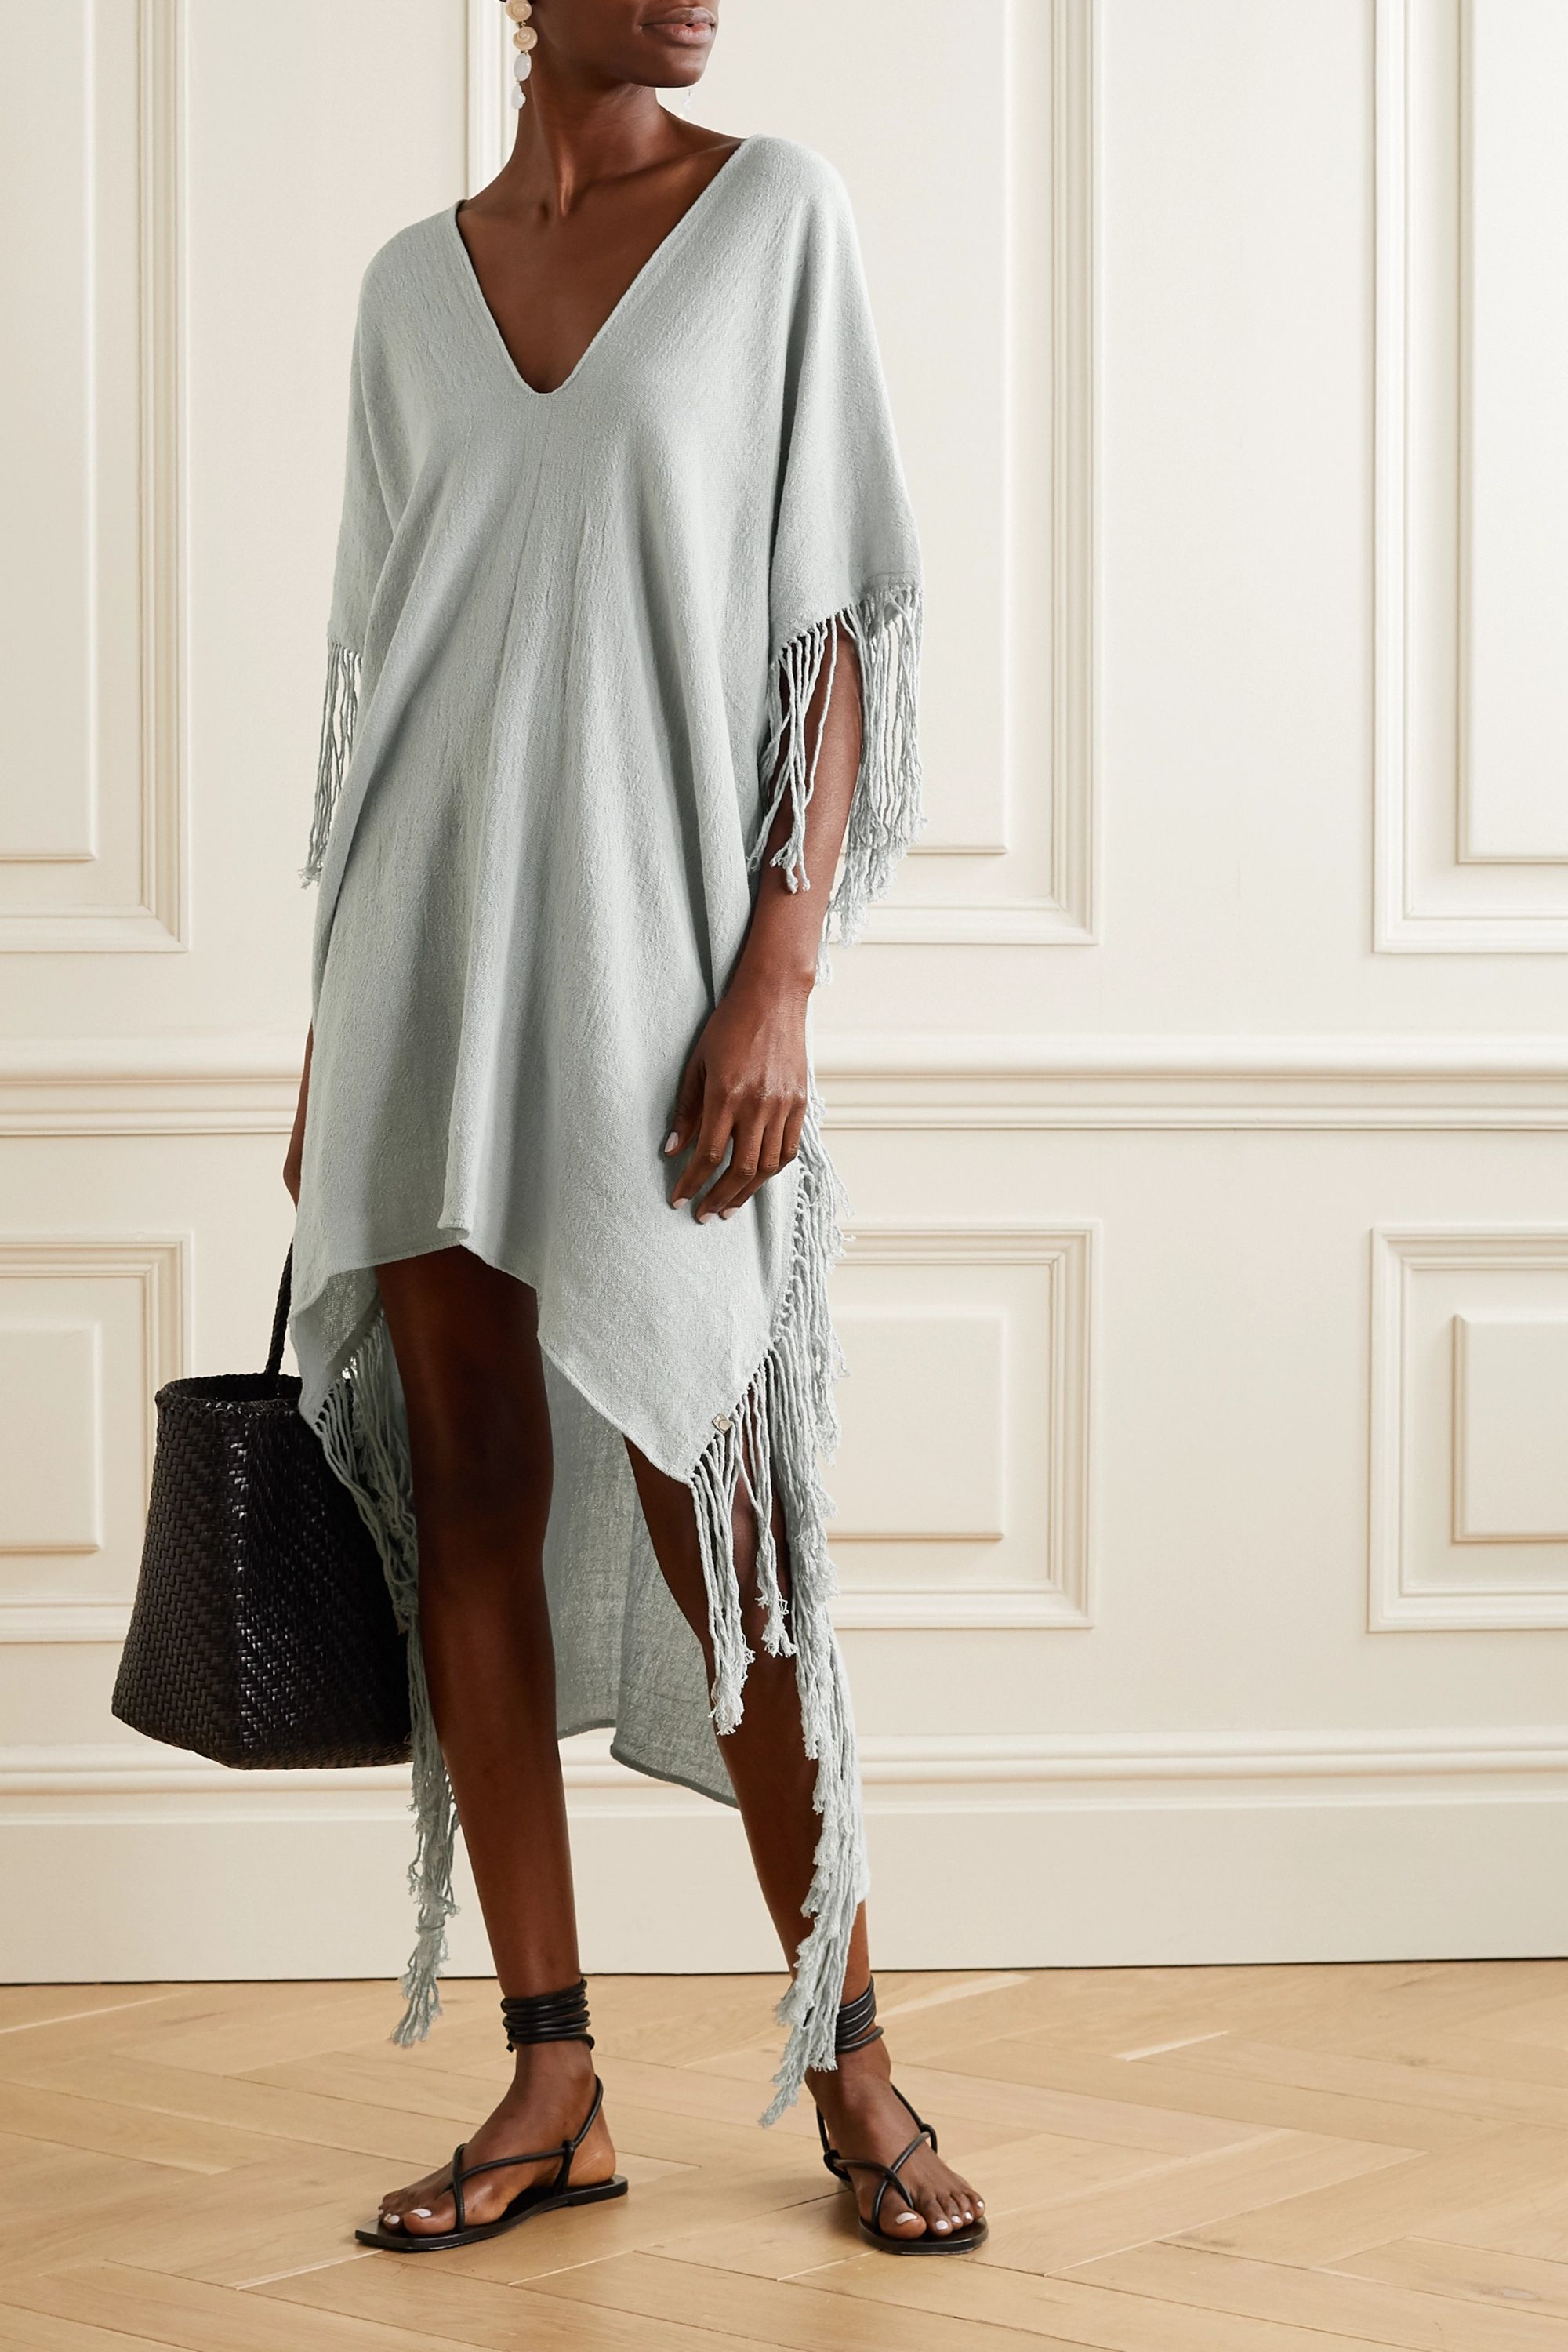 Caravana Butub asymmetric fringed cotton-gauze dress